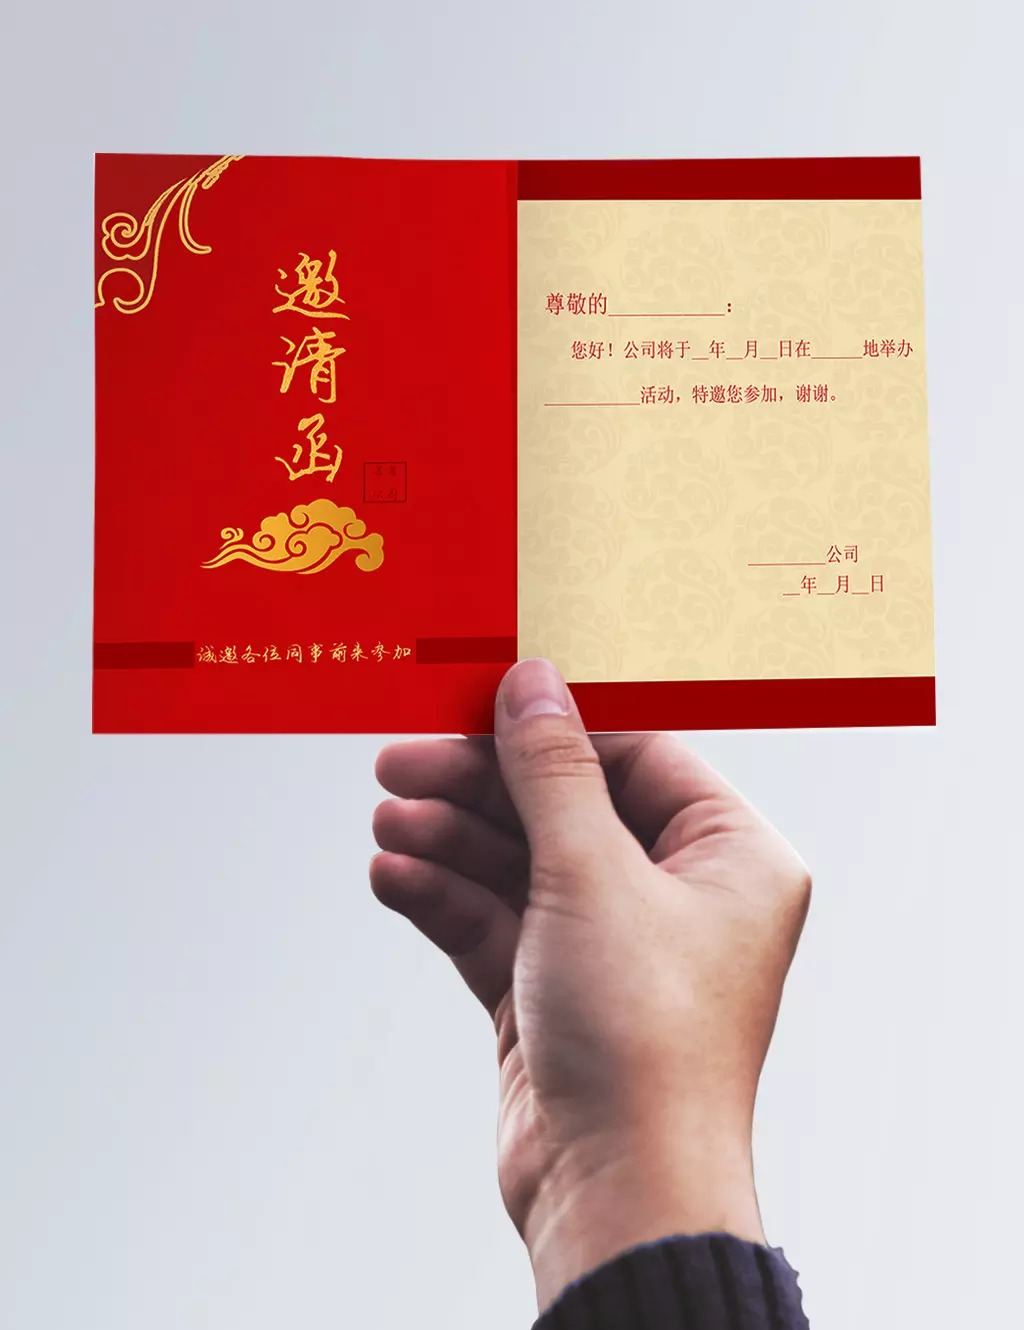 Company Party Red Festive Year Invitation Festive Year End